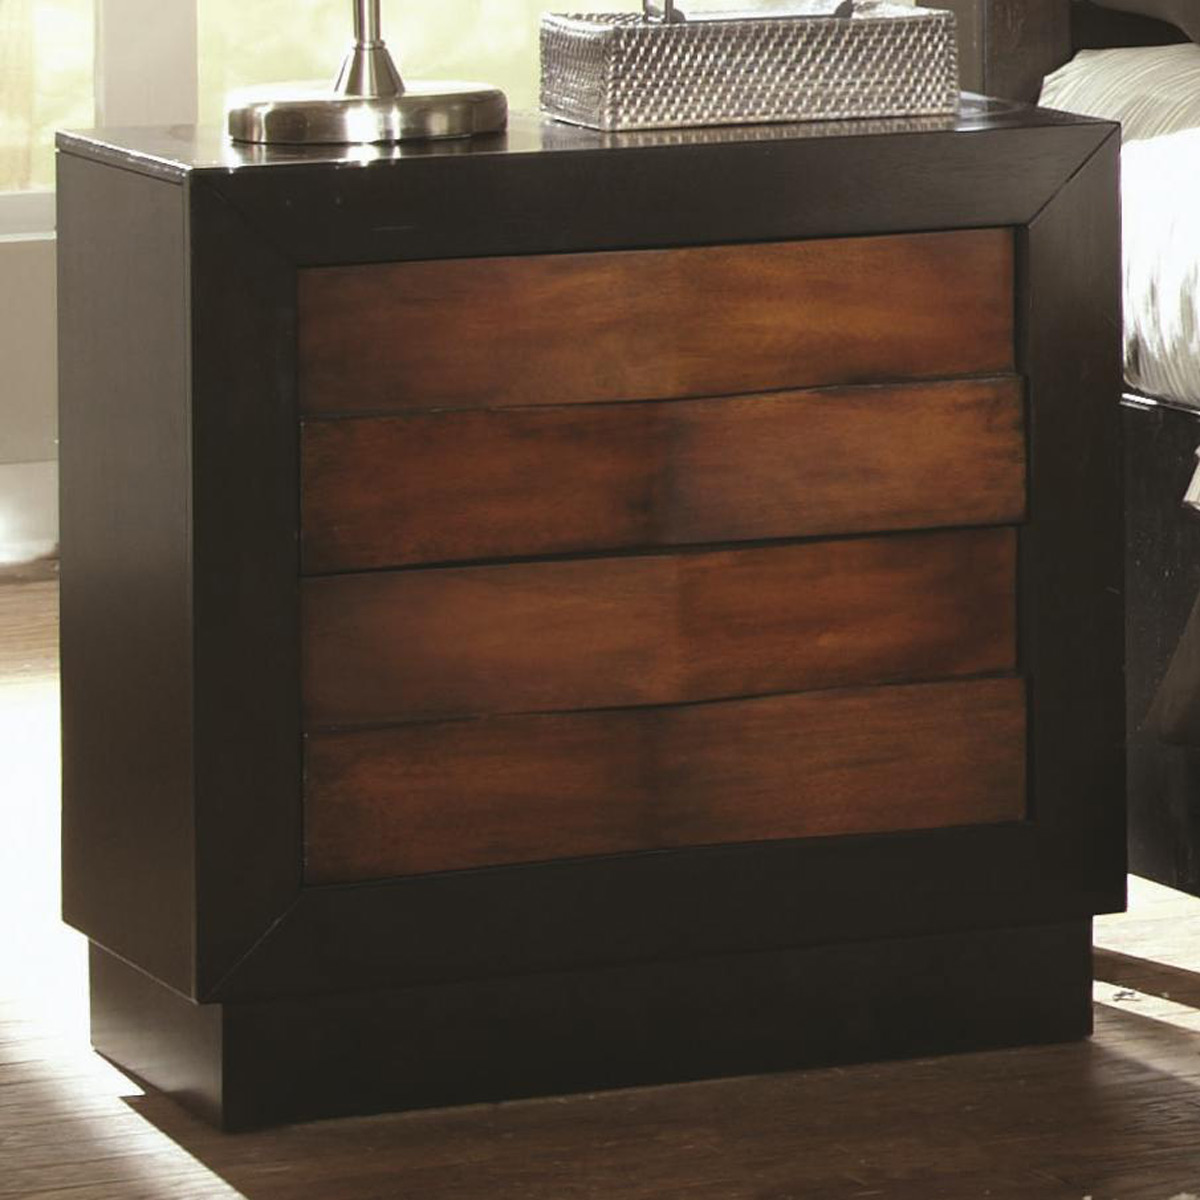 Coaster Rolwing Night Stand - Reddish Oak/Espresso